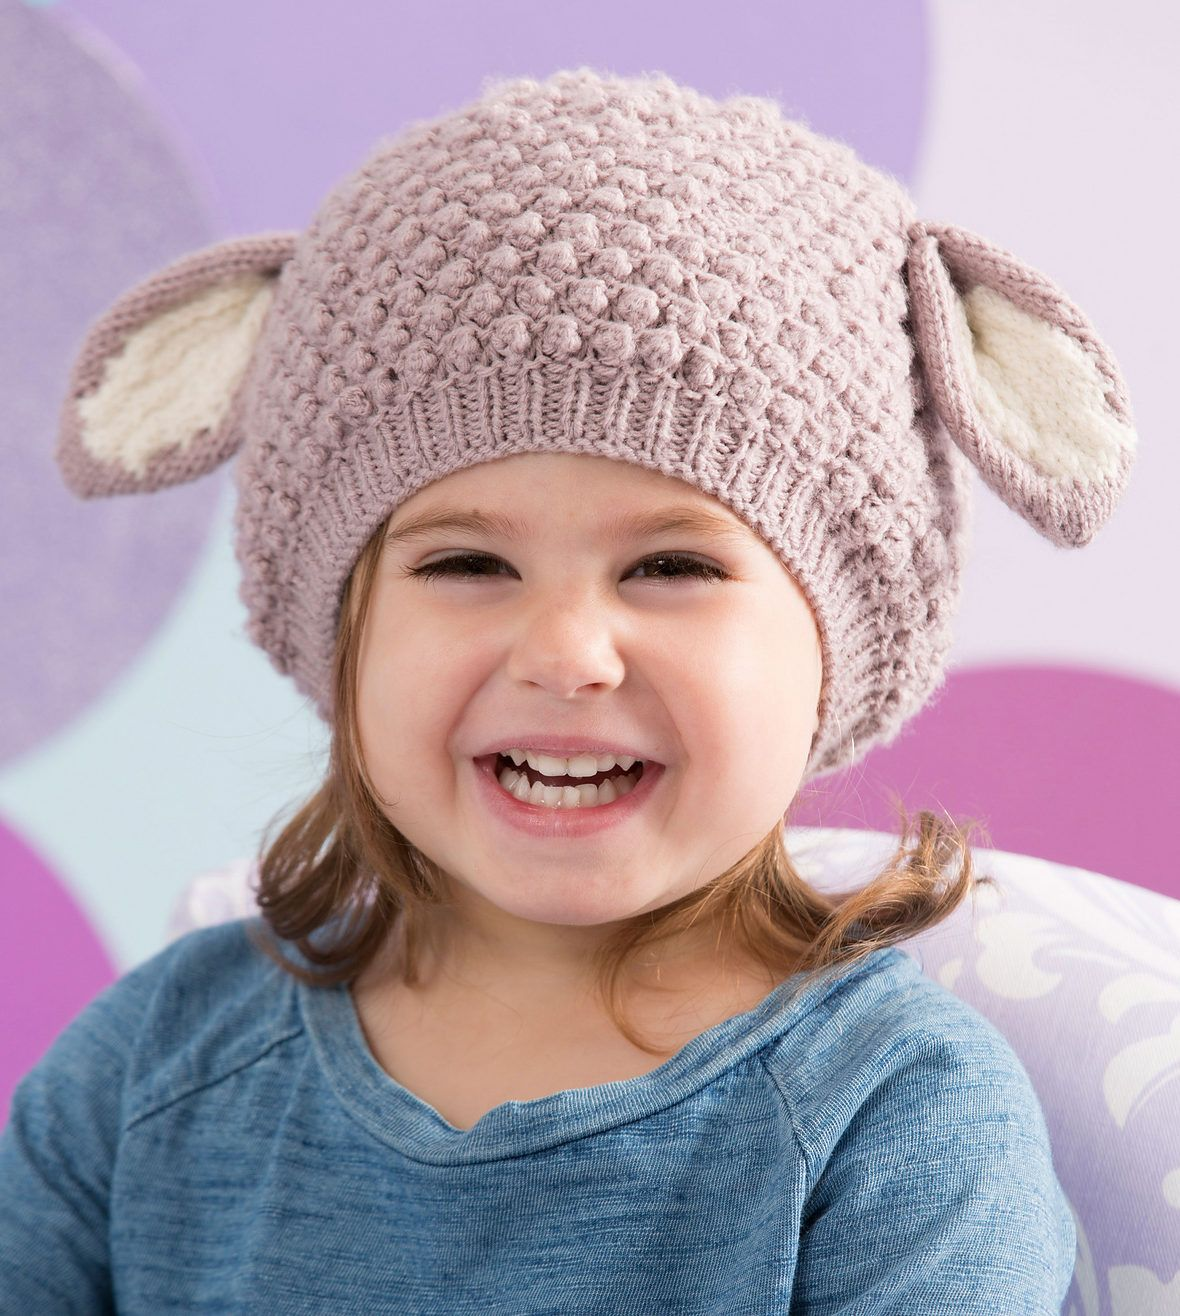 Animal Hat Knitting Patterns Knitting Knitted Hats